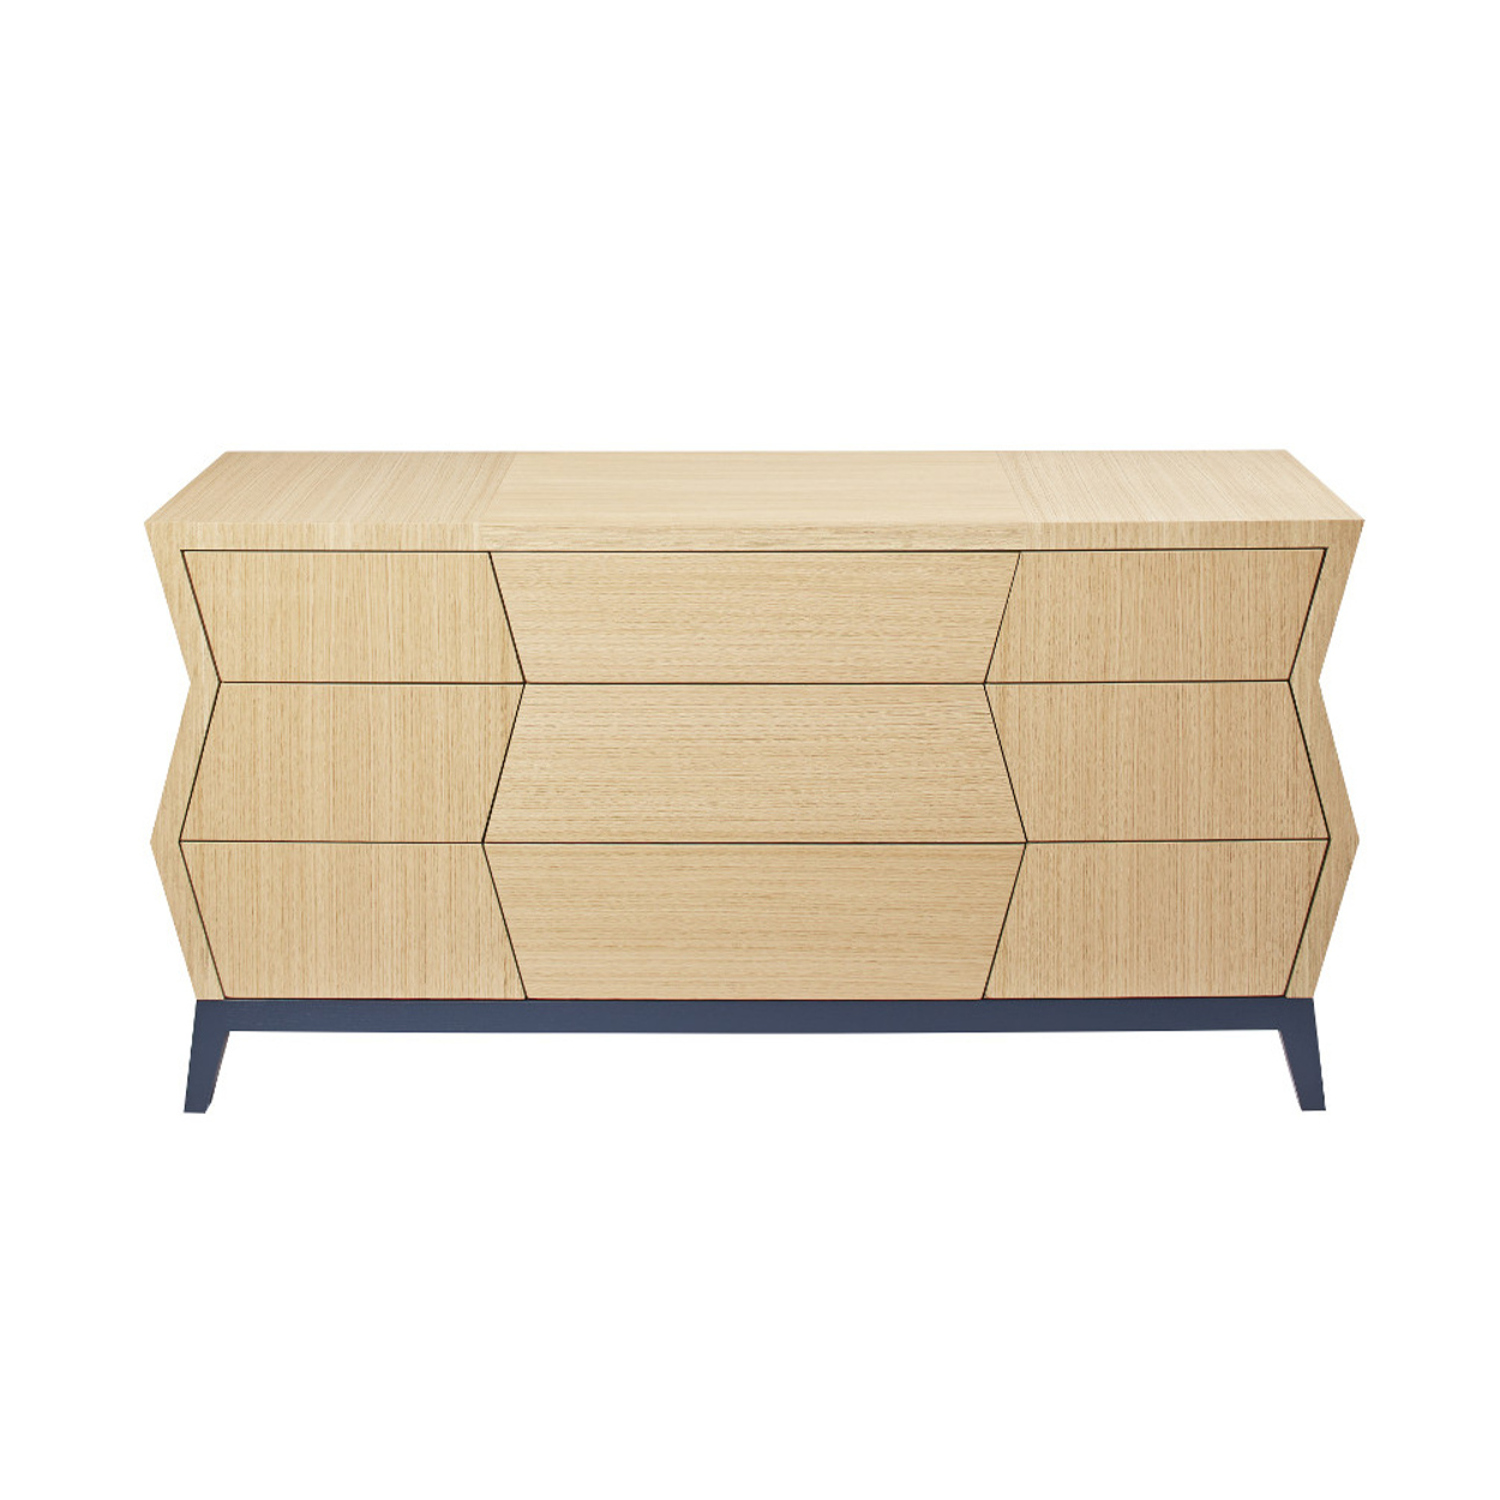 Mina - Chest of drawers —